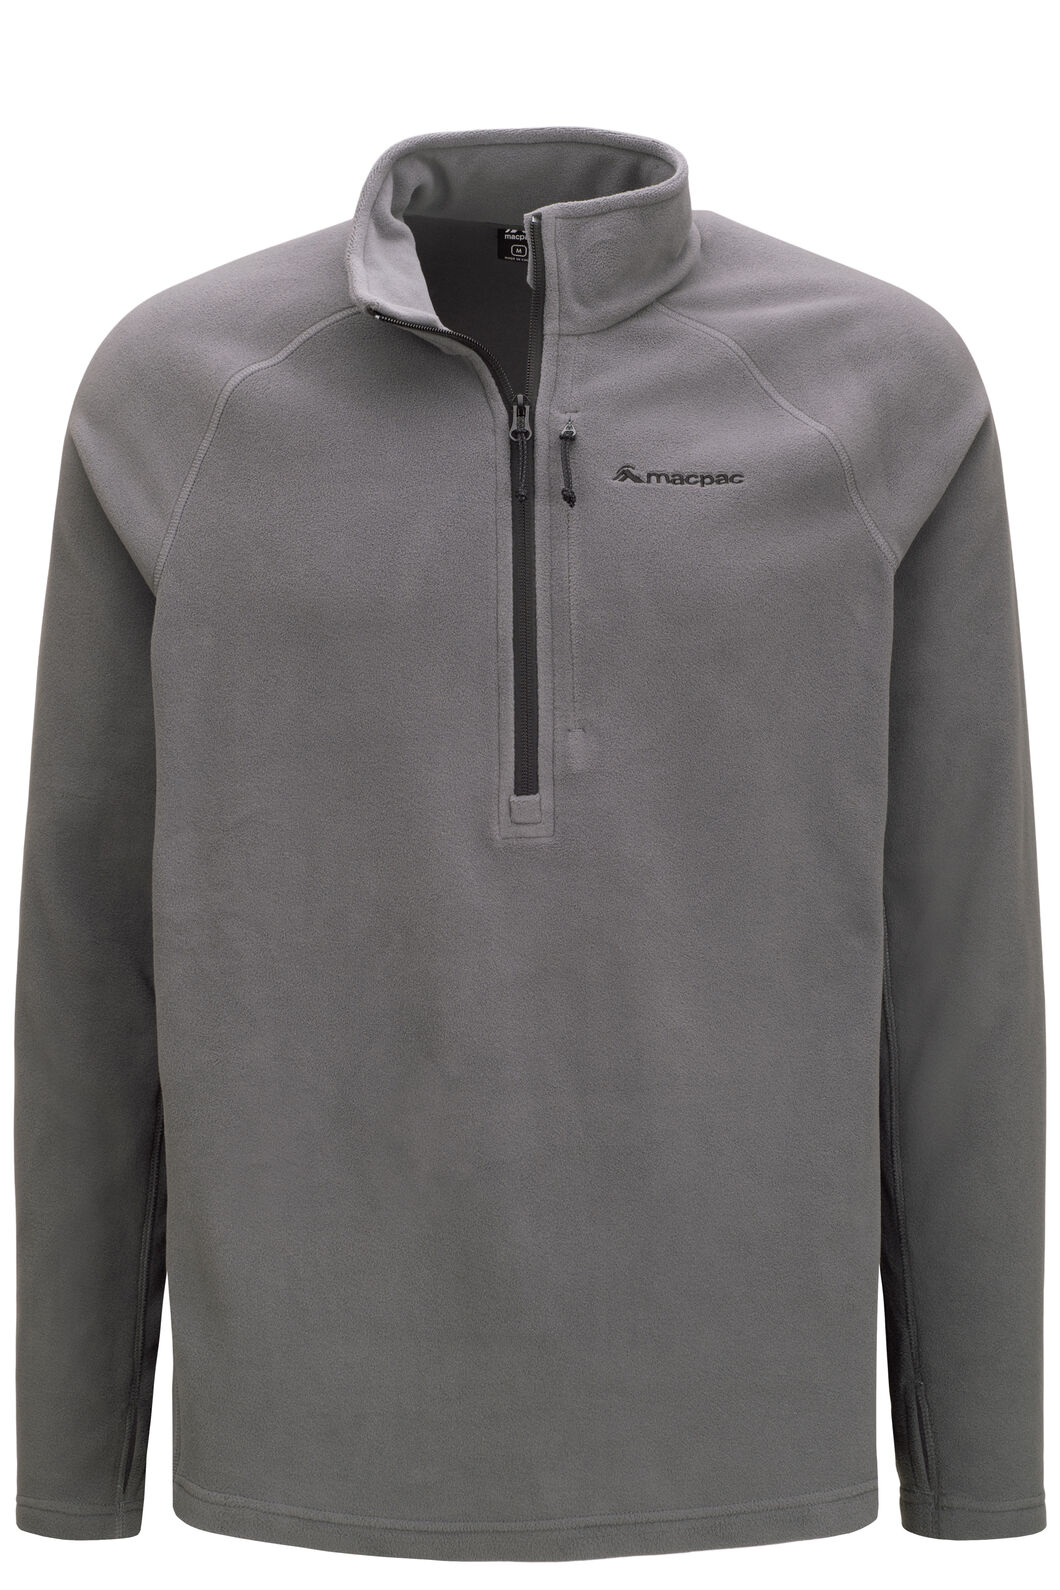 Macpac Tui Polartec® Micro Fleece® Pullover — Men's, Iron Gate/Black, hi-res